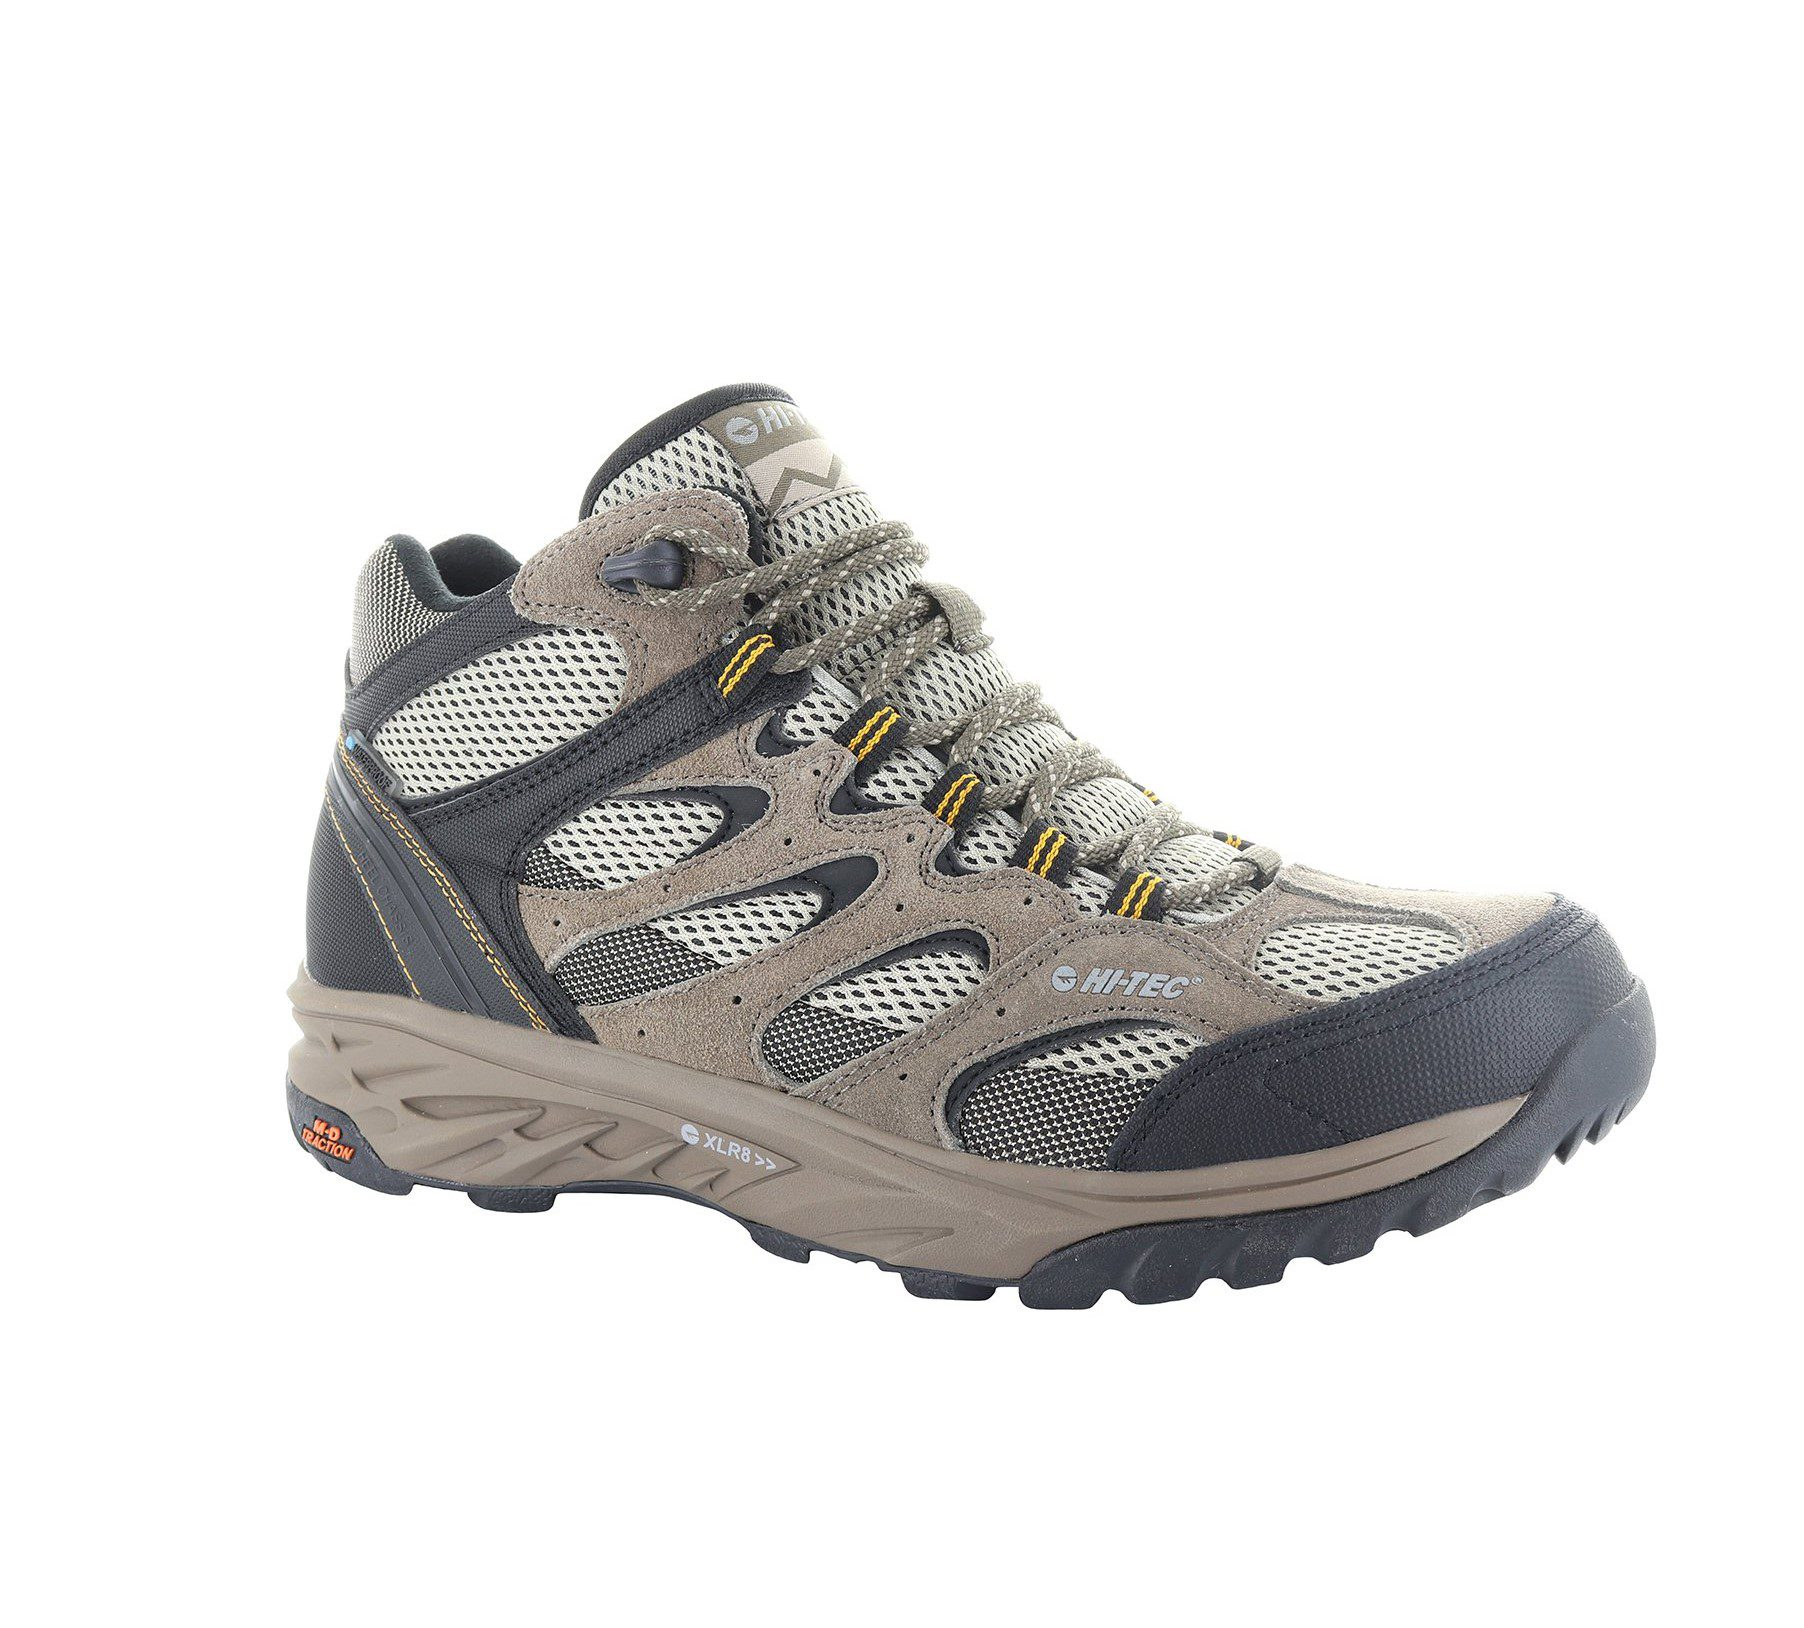 Hi-Tec Men's Wild-Fire Mid boots - Taupe / Dune / Core Gold